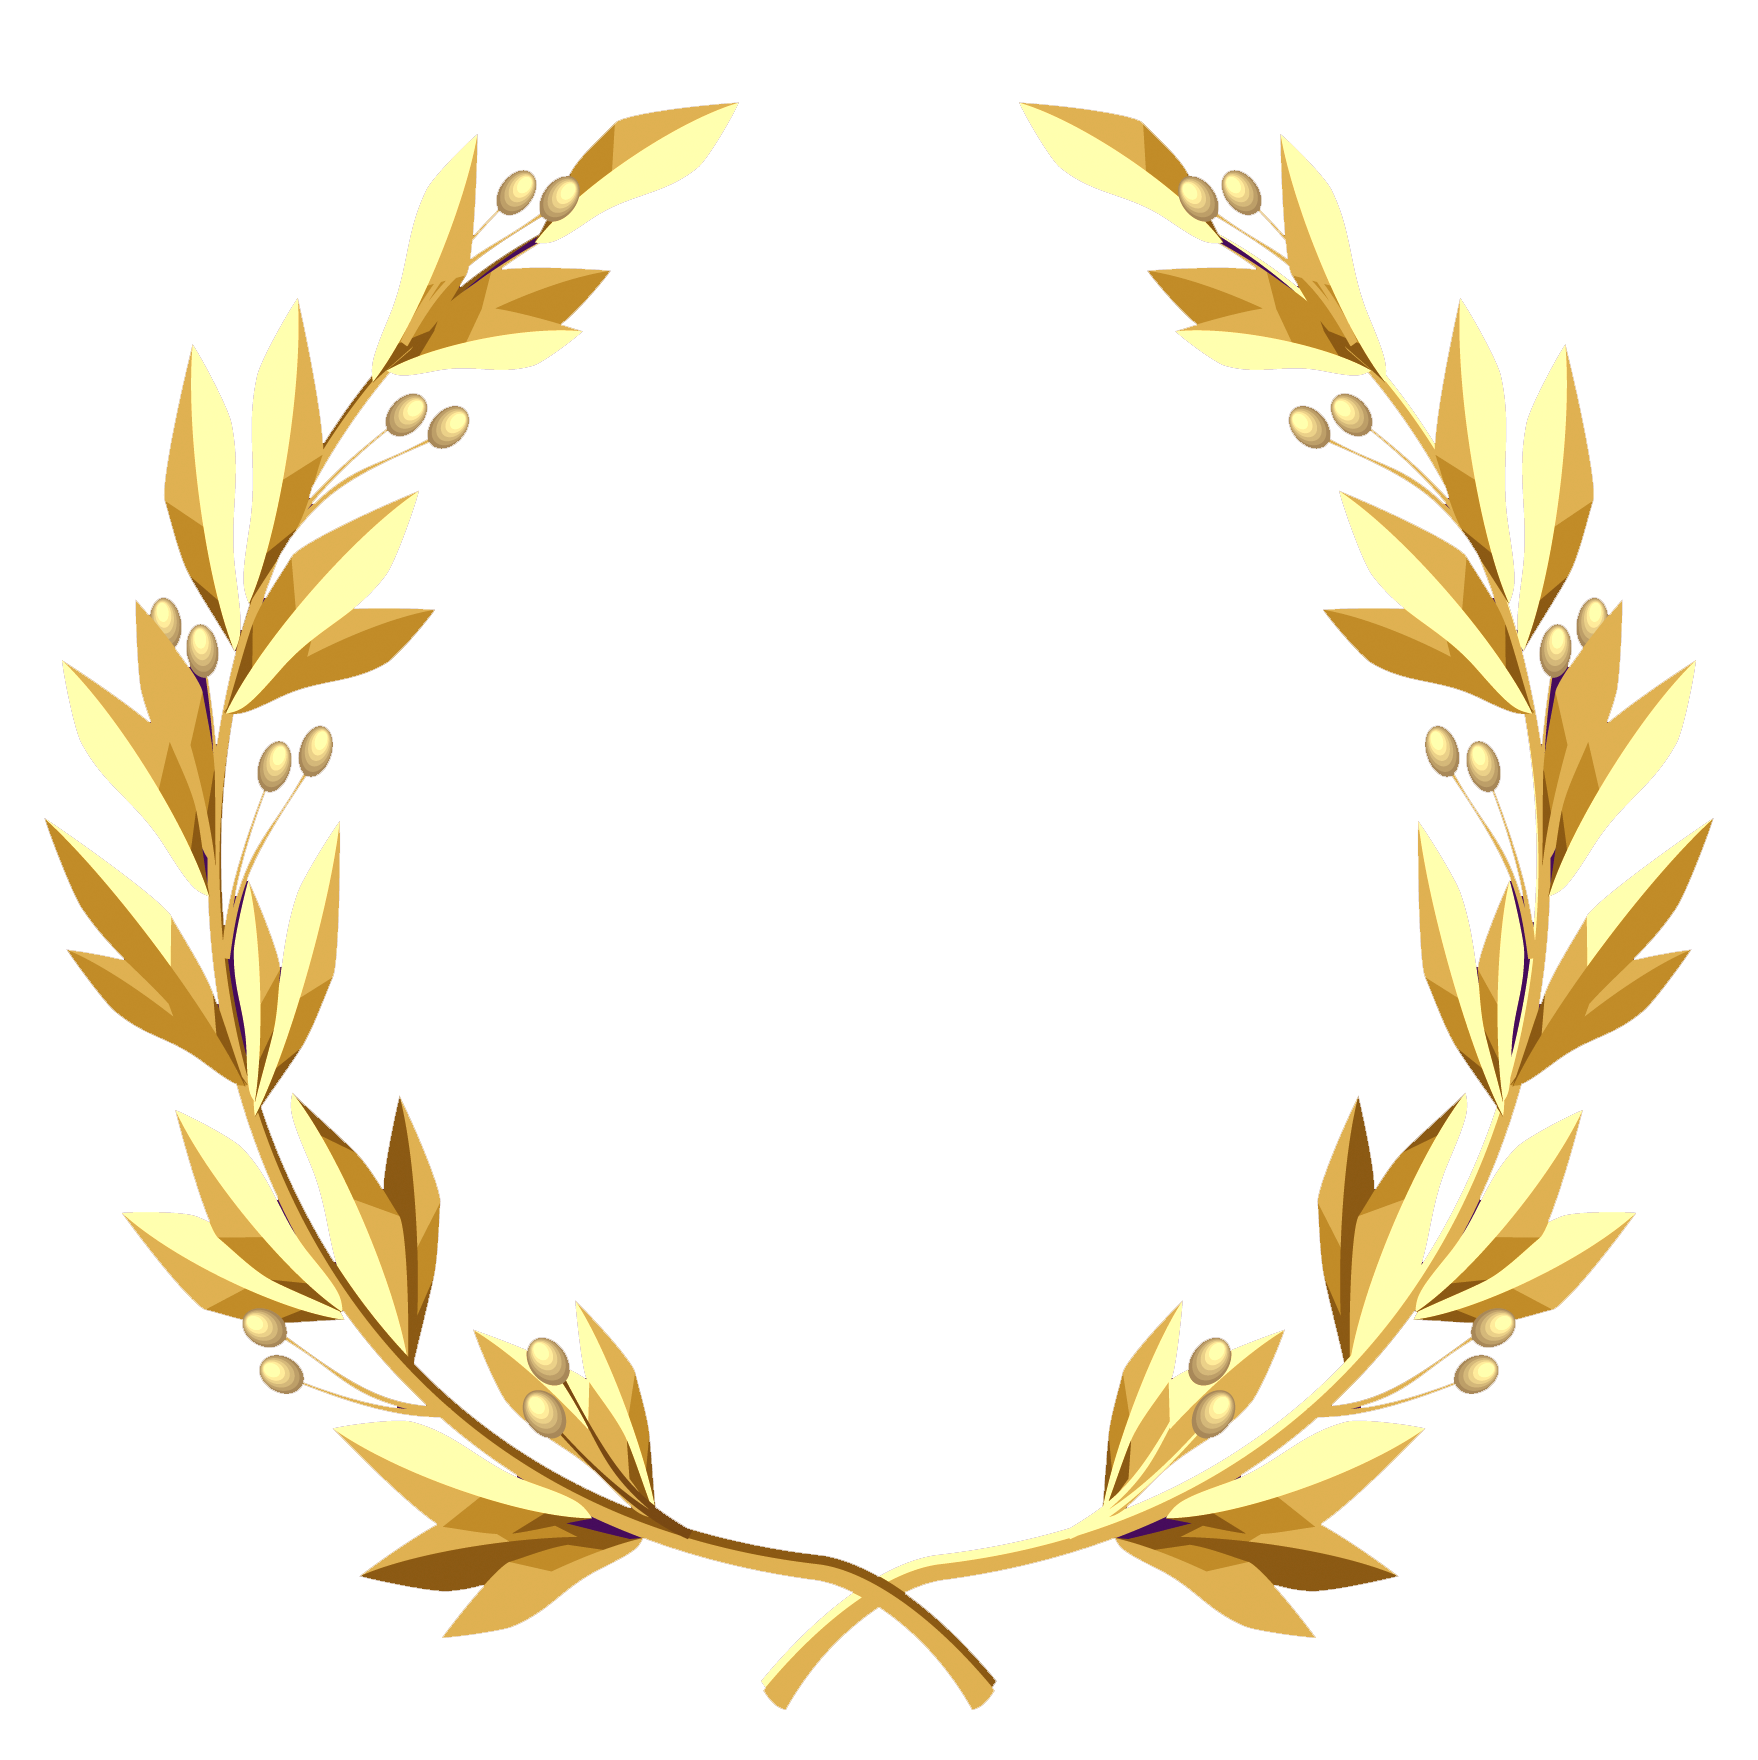 Halloween clipart wreath. Transparent gold png picture